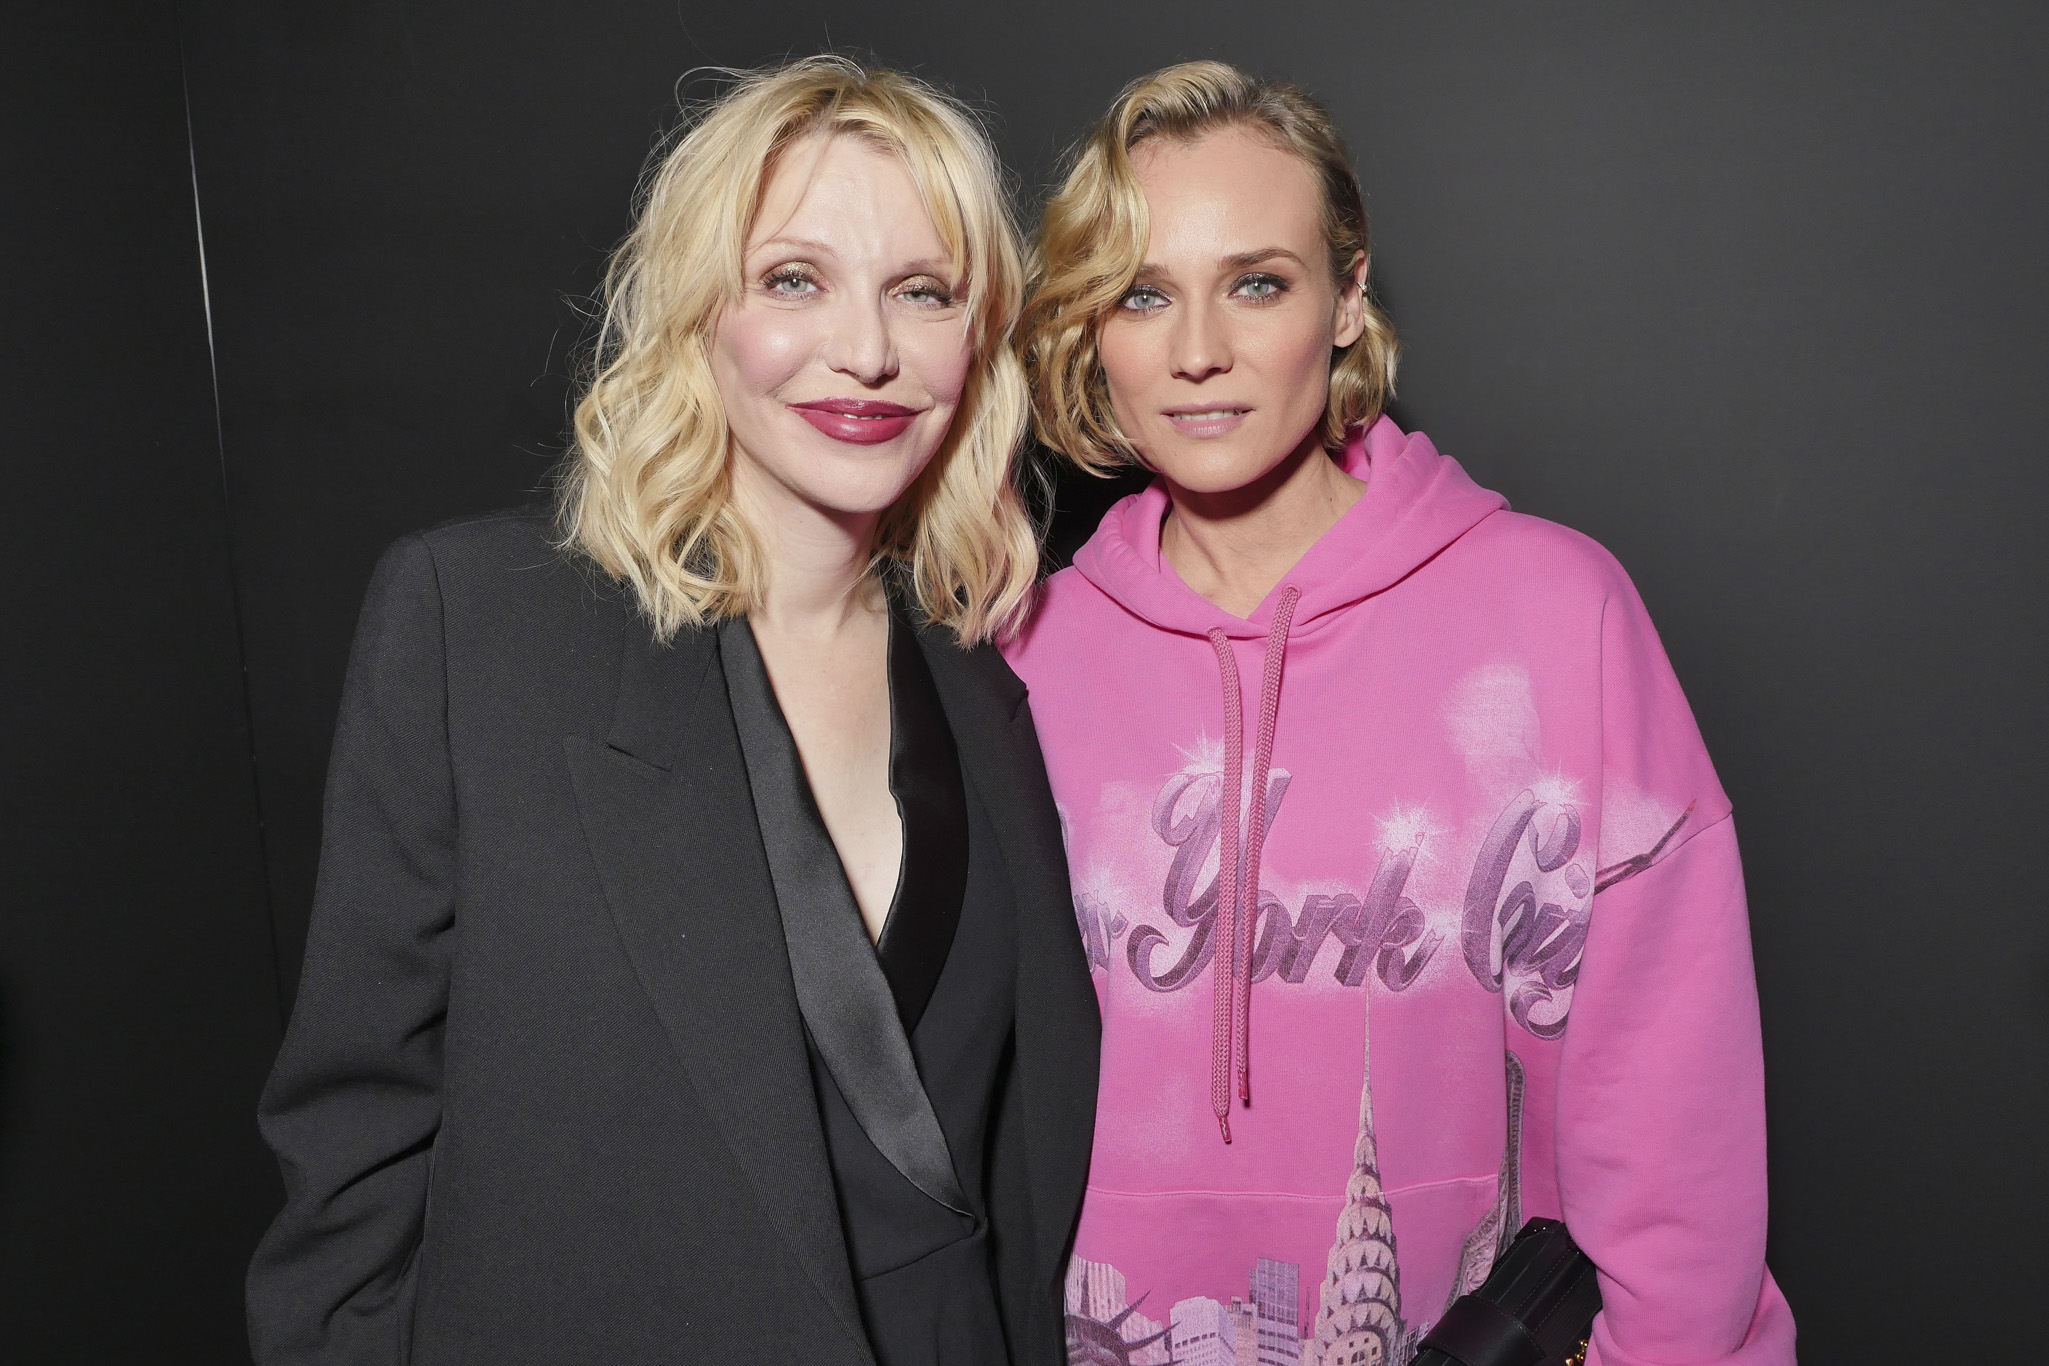 Courtney Love and Diane Kruger